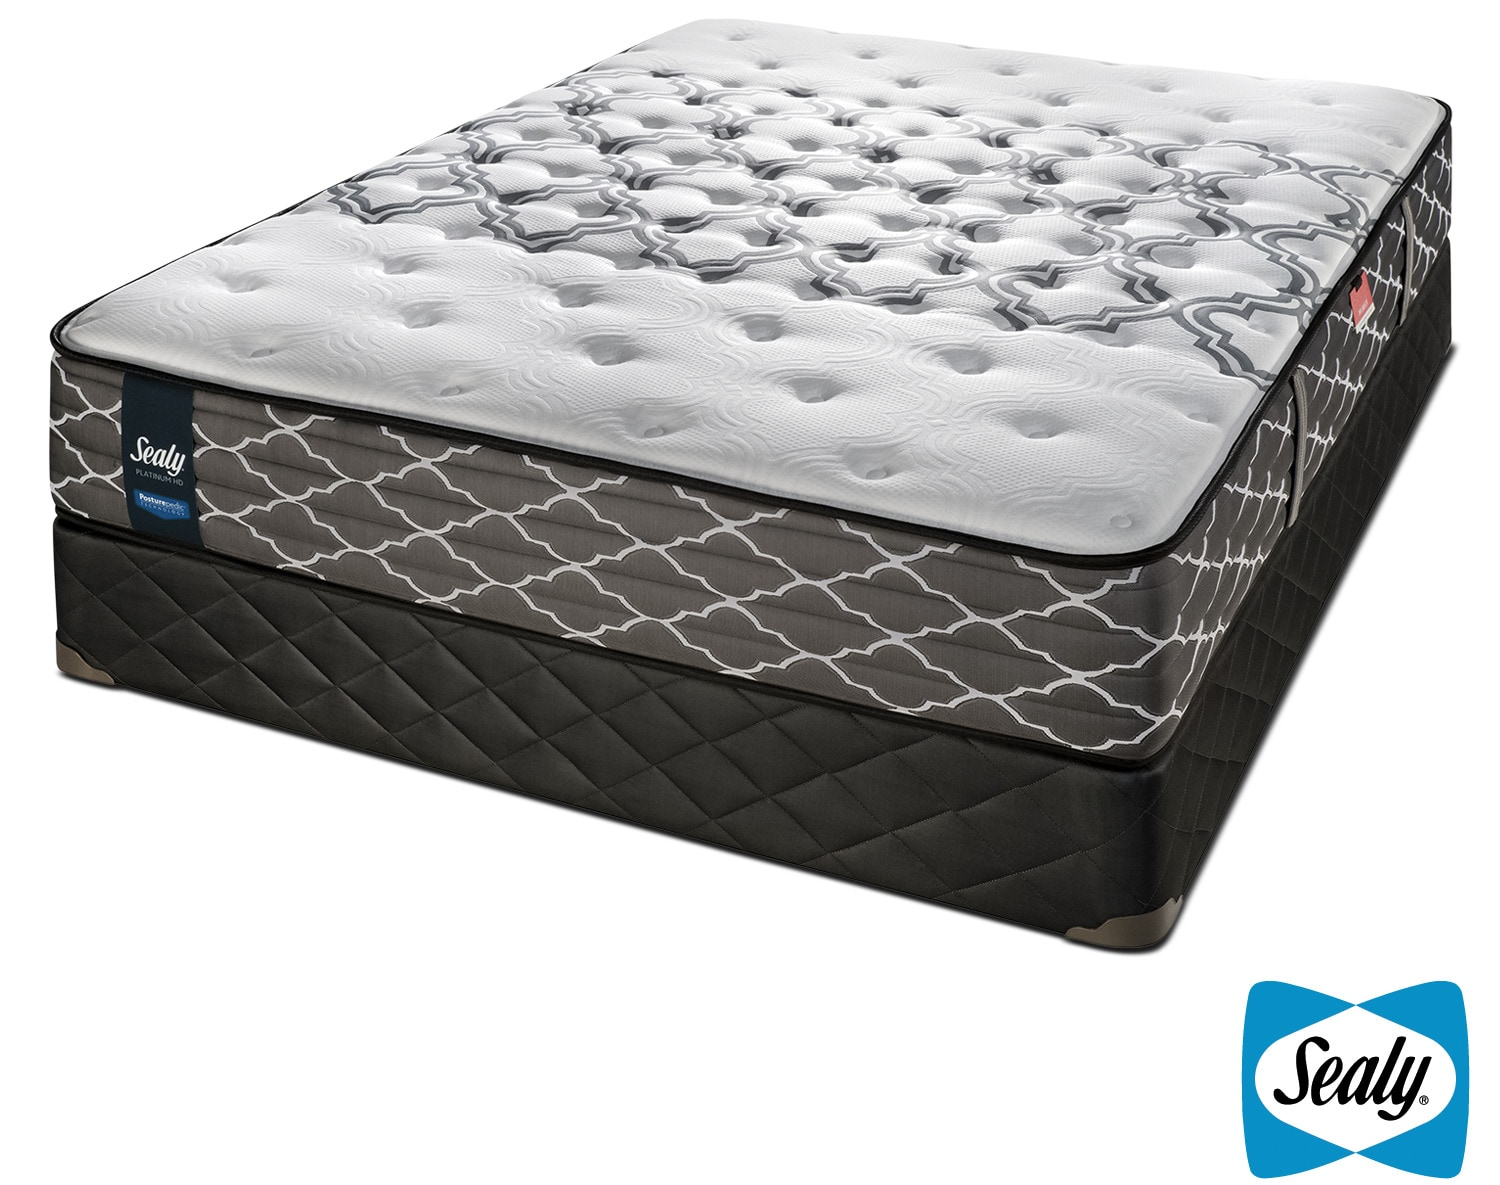 Mattresses and Bedding - Sealy Late Night Hybrid Extra Firm Queen Mattress and Boxspring Set